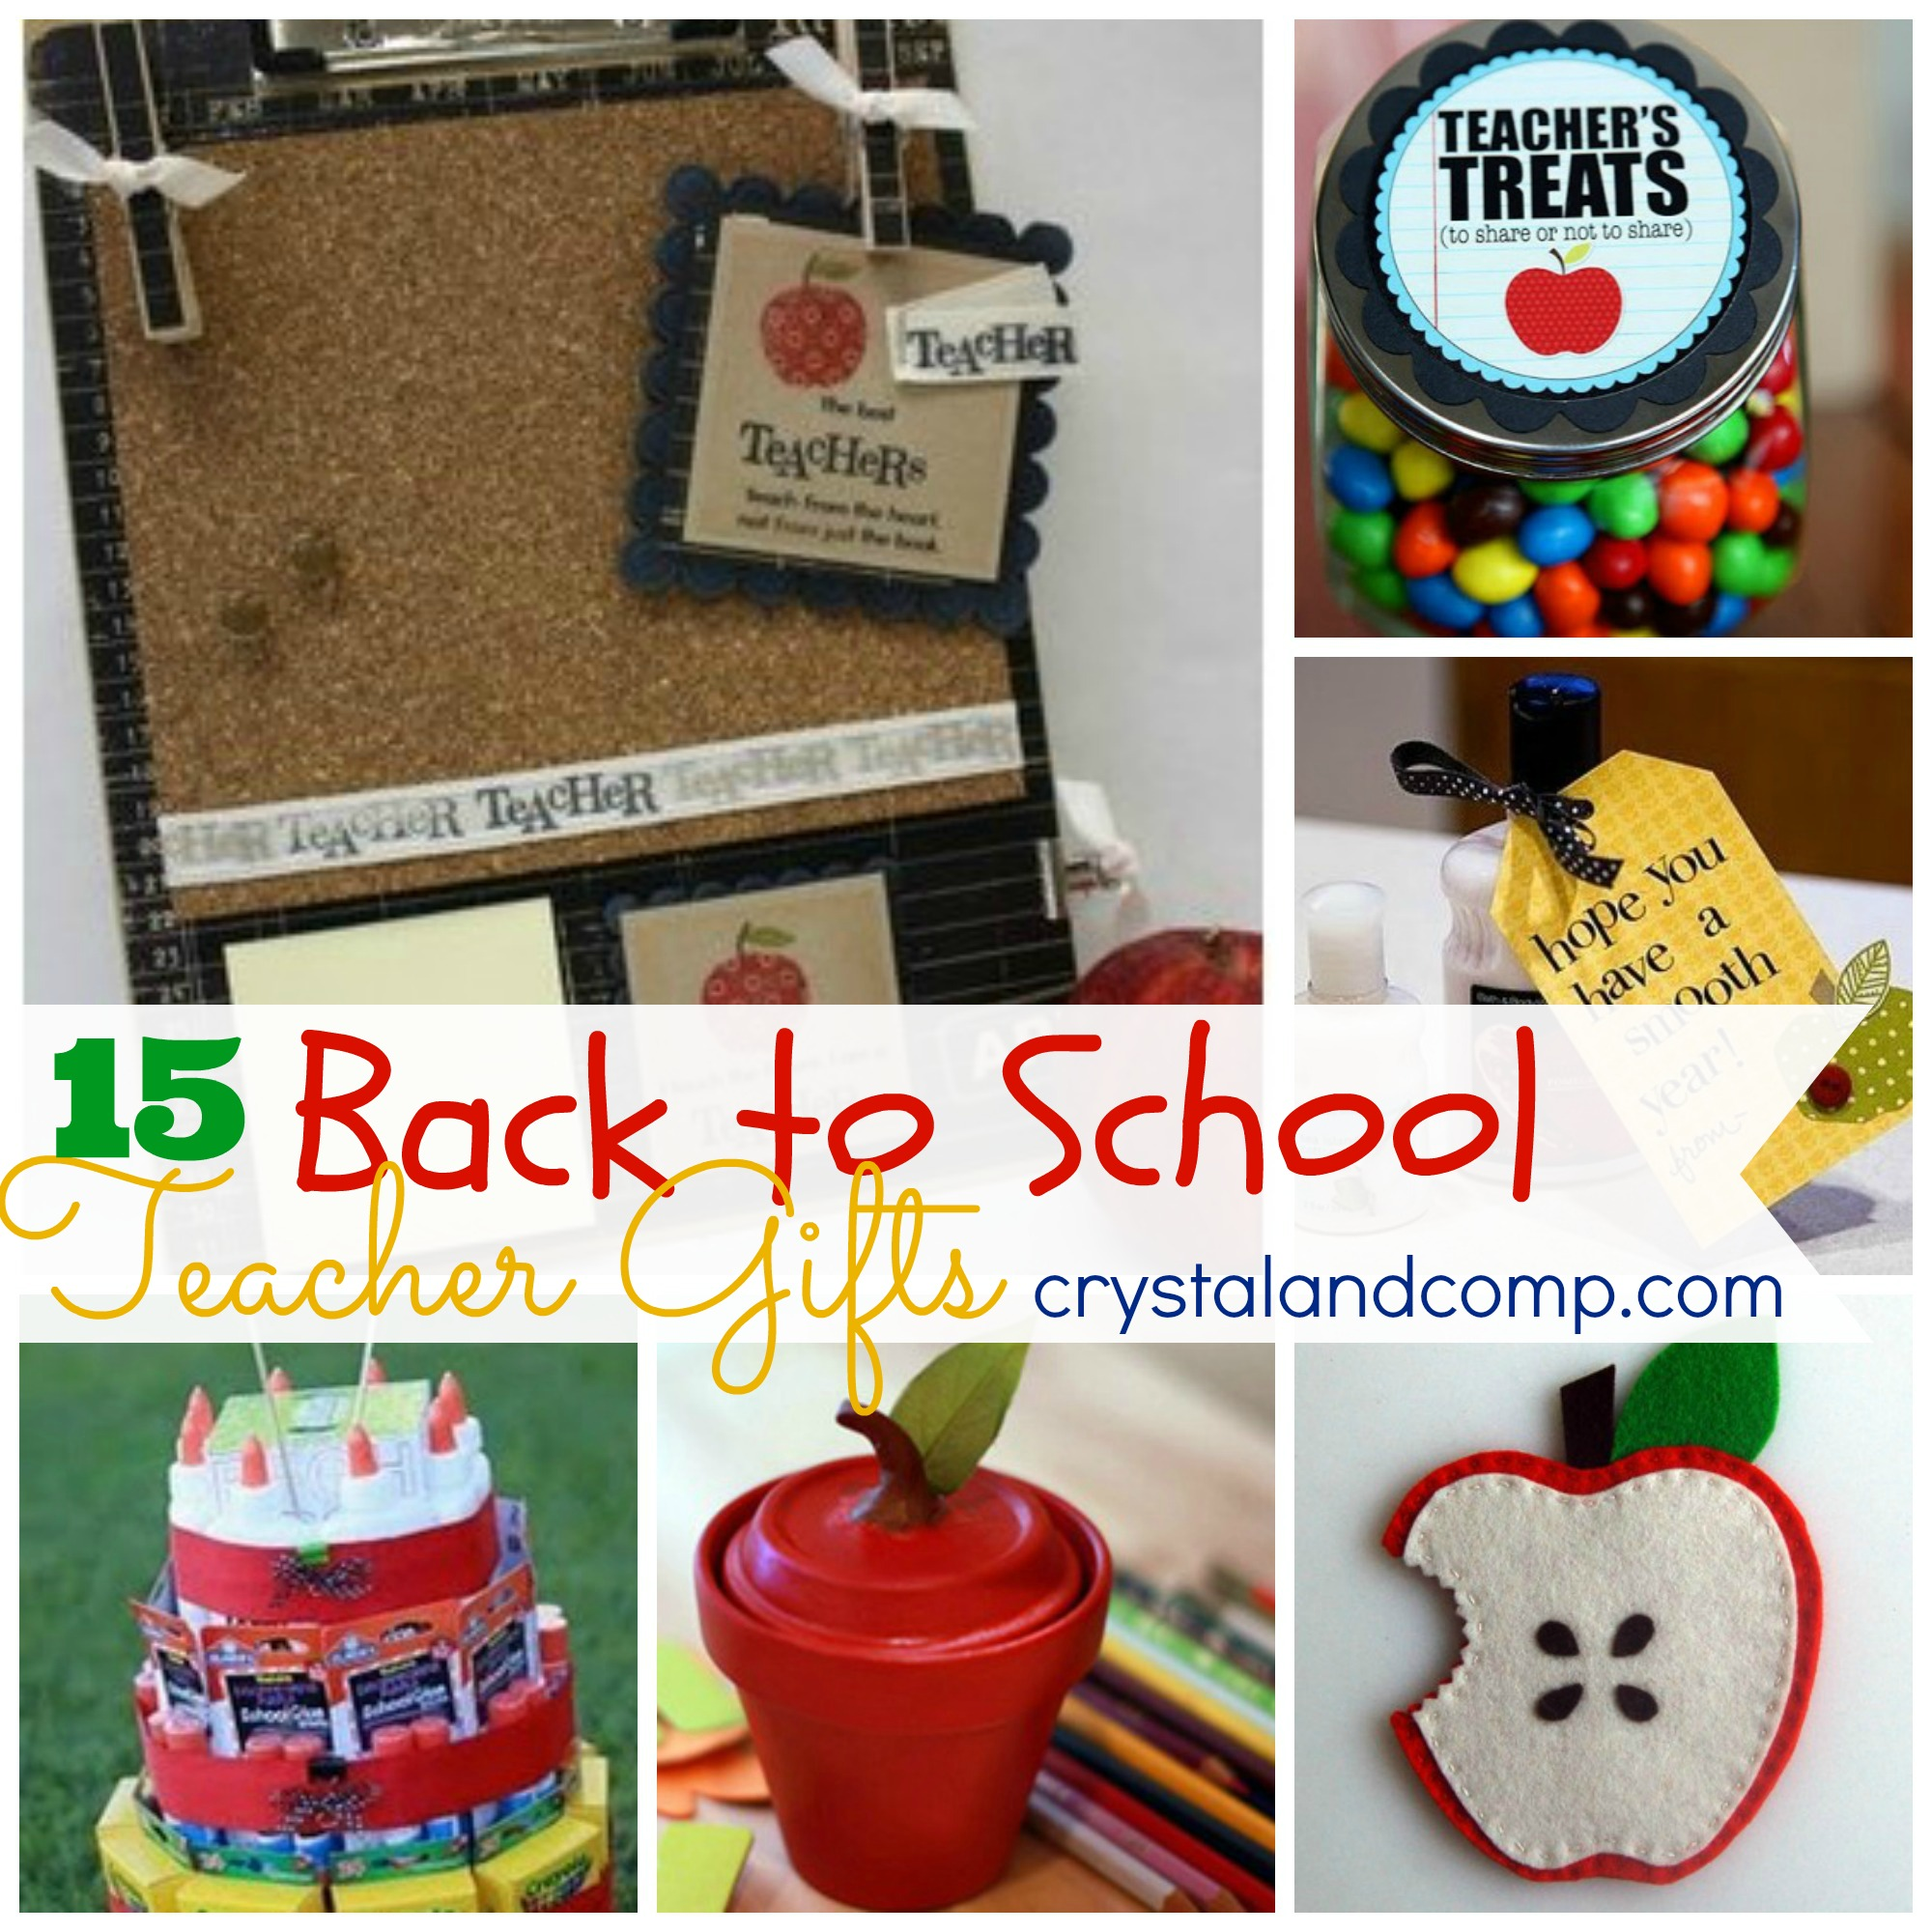 Homemade gifts gift ideas of teachers teach gifts nonfood gifts apps